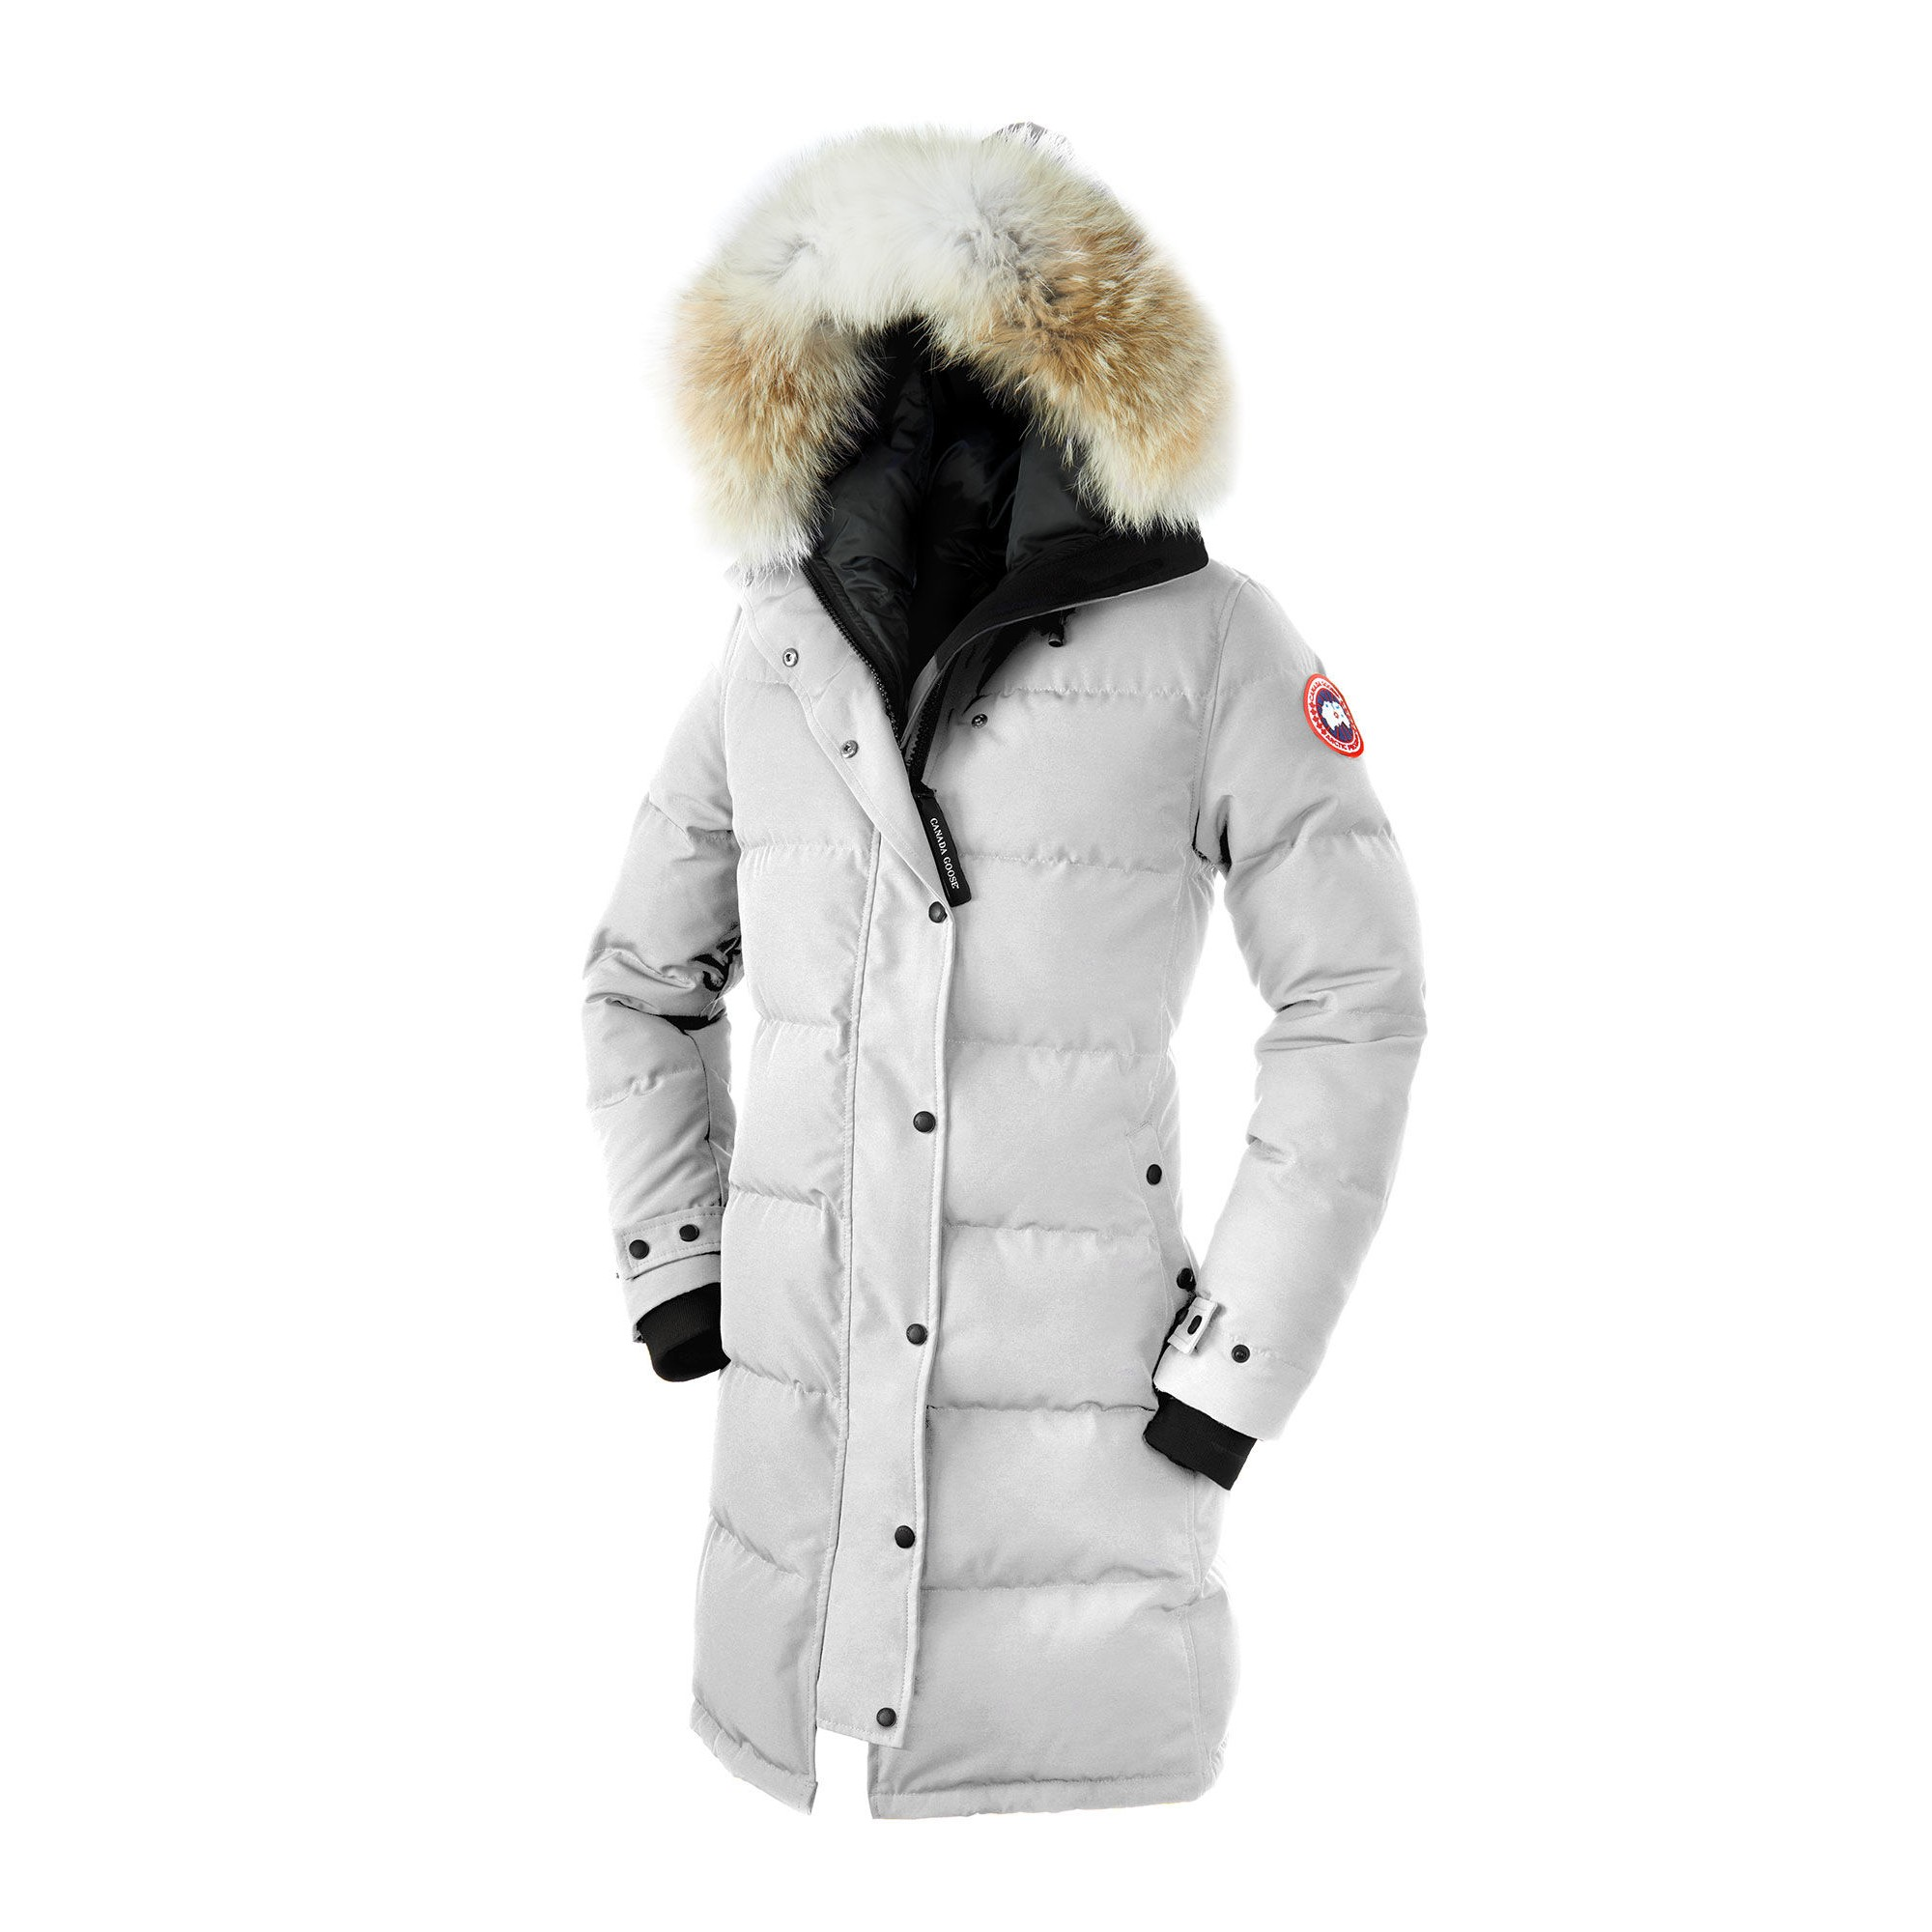 where to buy canada goose jackets online